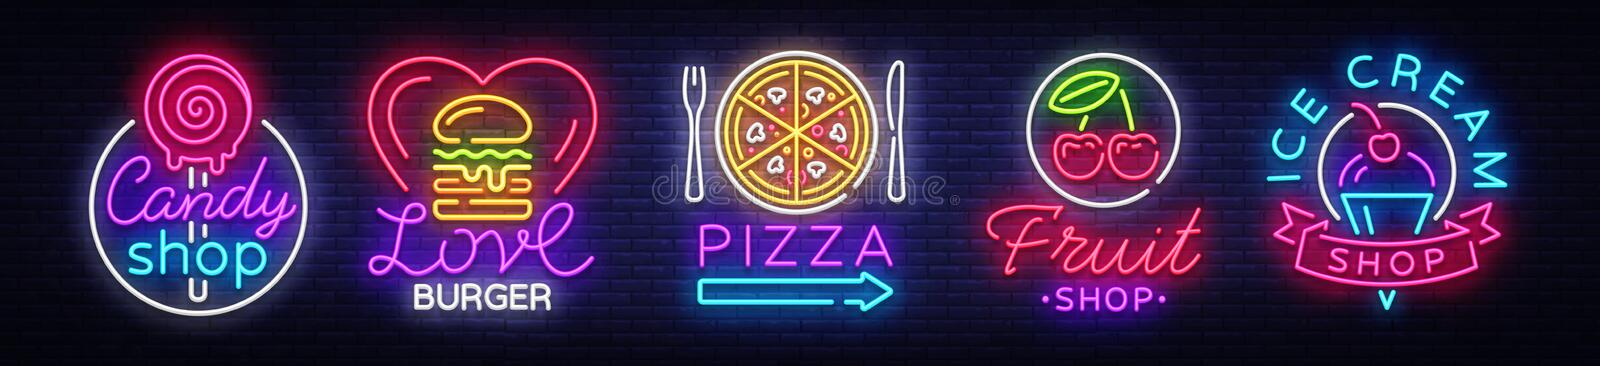 Big collection neon signs on theme food. Set Neon signs Burger, Sweets, Pizza, Fruits, Ice cream shop, Candy shop. Neon vector illustration